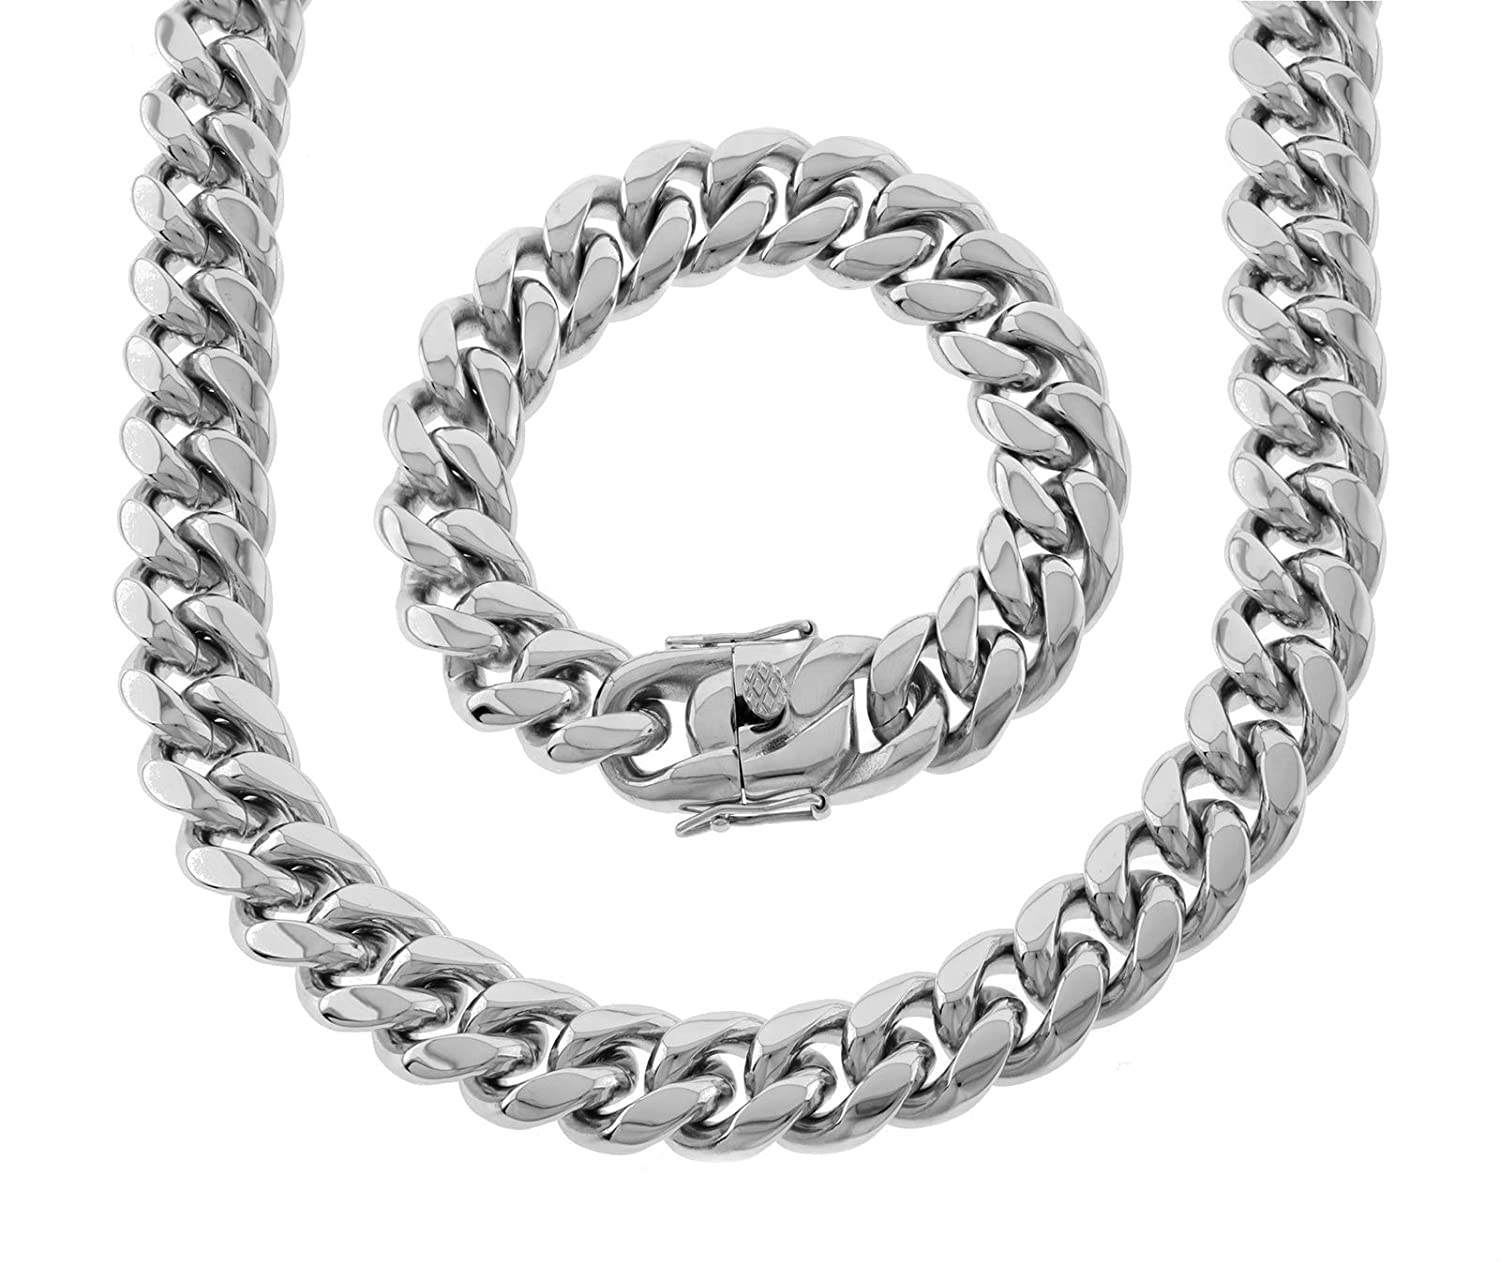 SOLID STAINLESS STEEL ANTI-TARNISH THICK MIAMI CUBAN CHAIN /& BRACELET 18MM 30/'/'